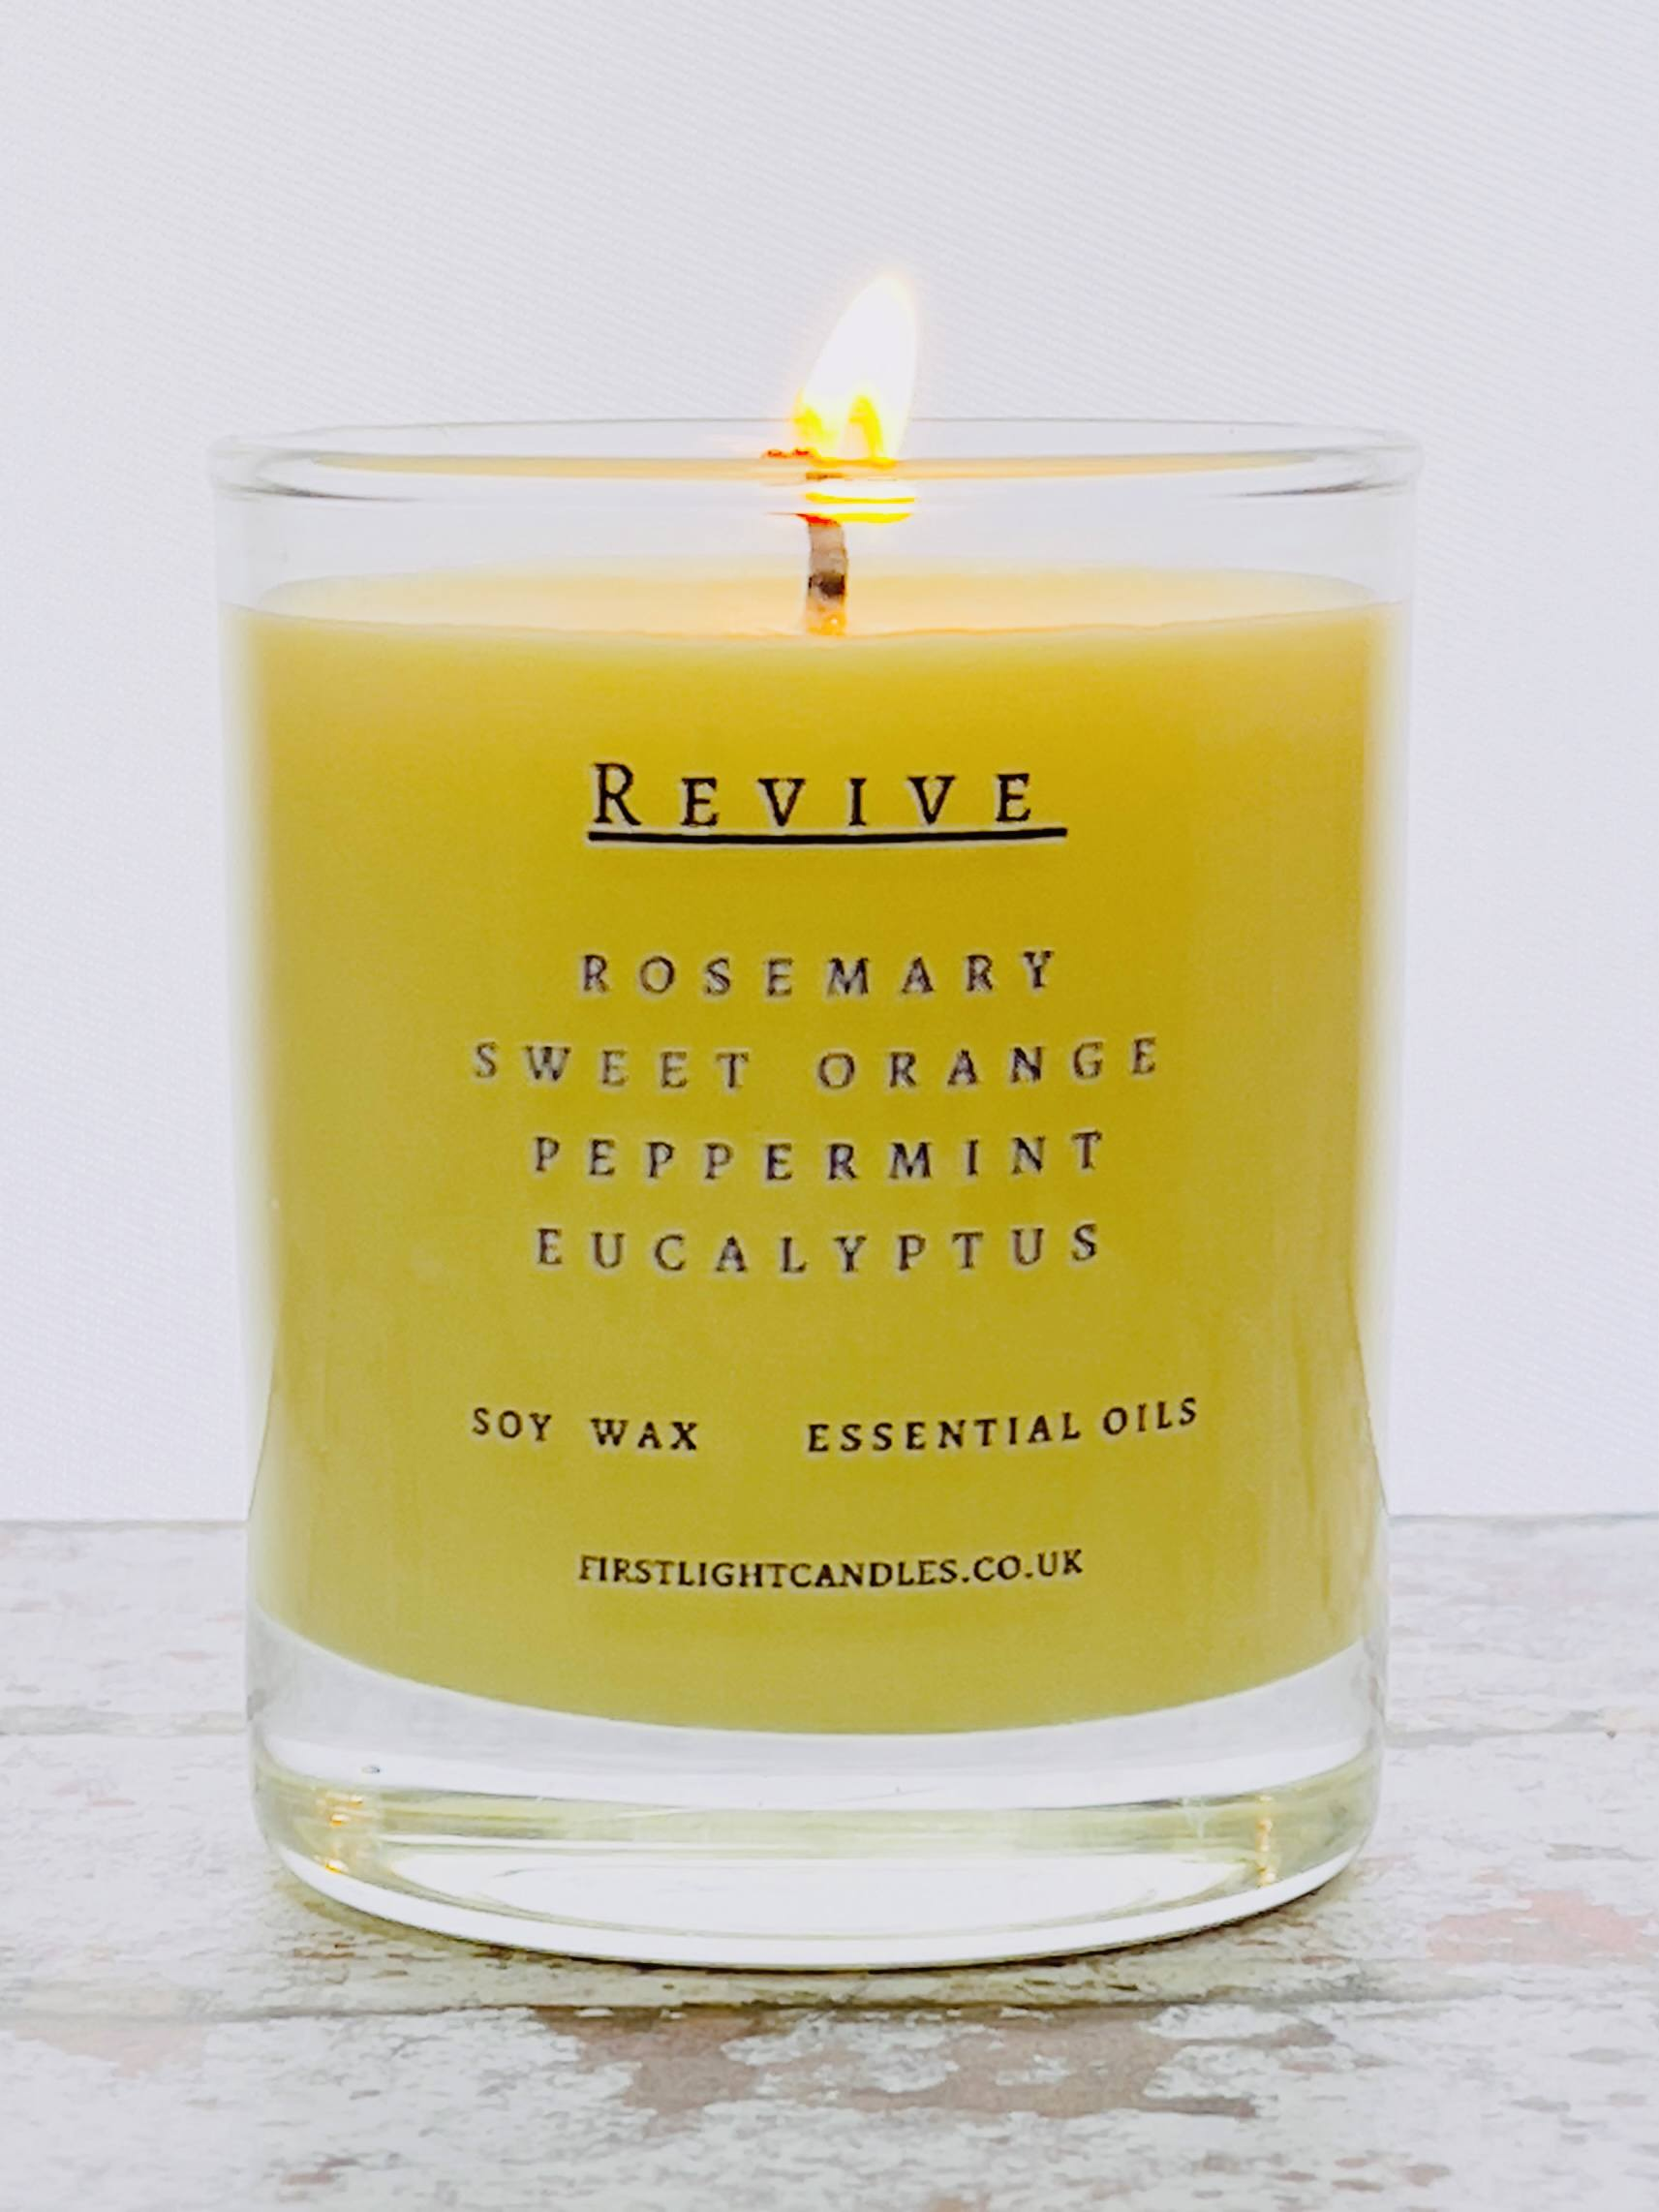 Vegan Soy Candle with Rosemary, Orange, Peppermint and Eucalyptus Essential Oils Kind Shop